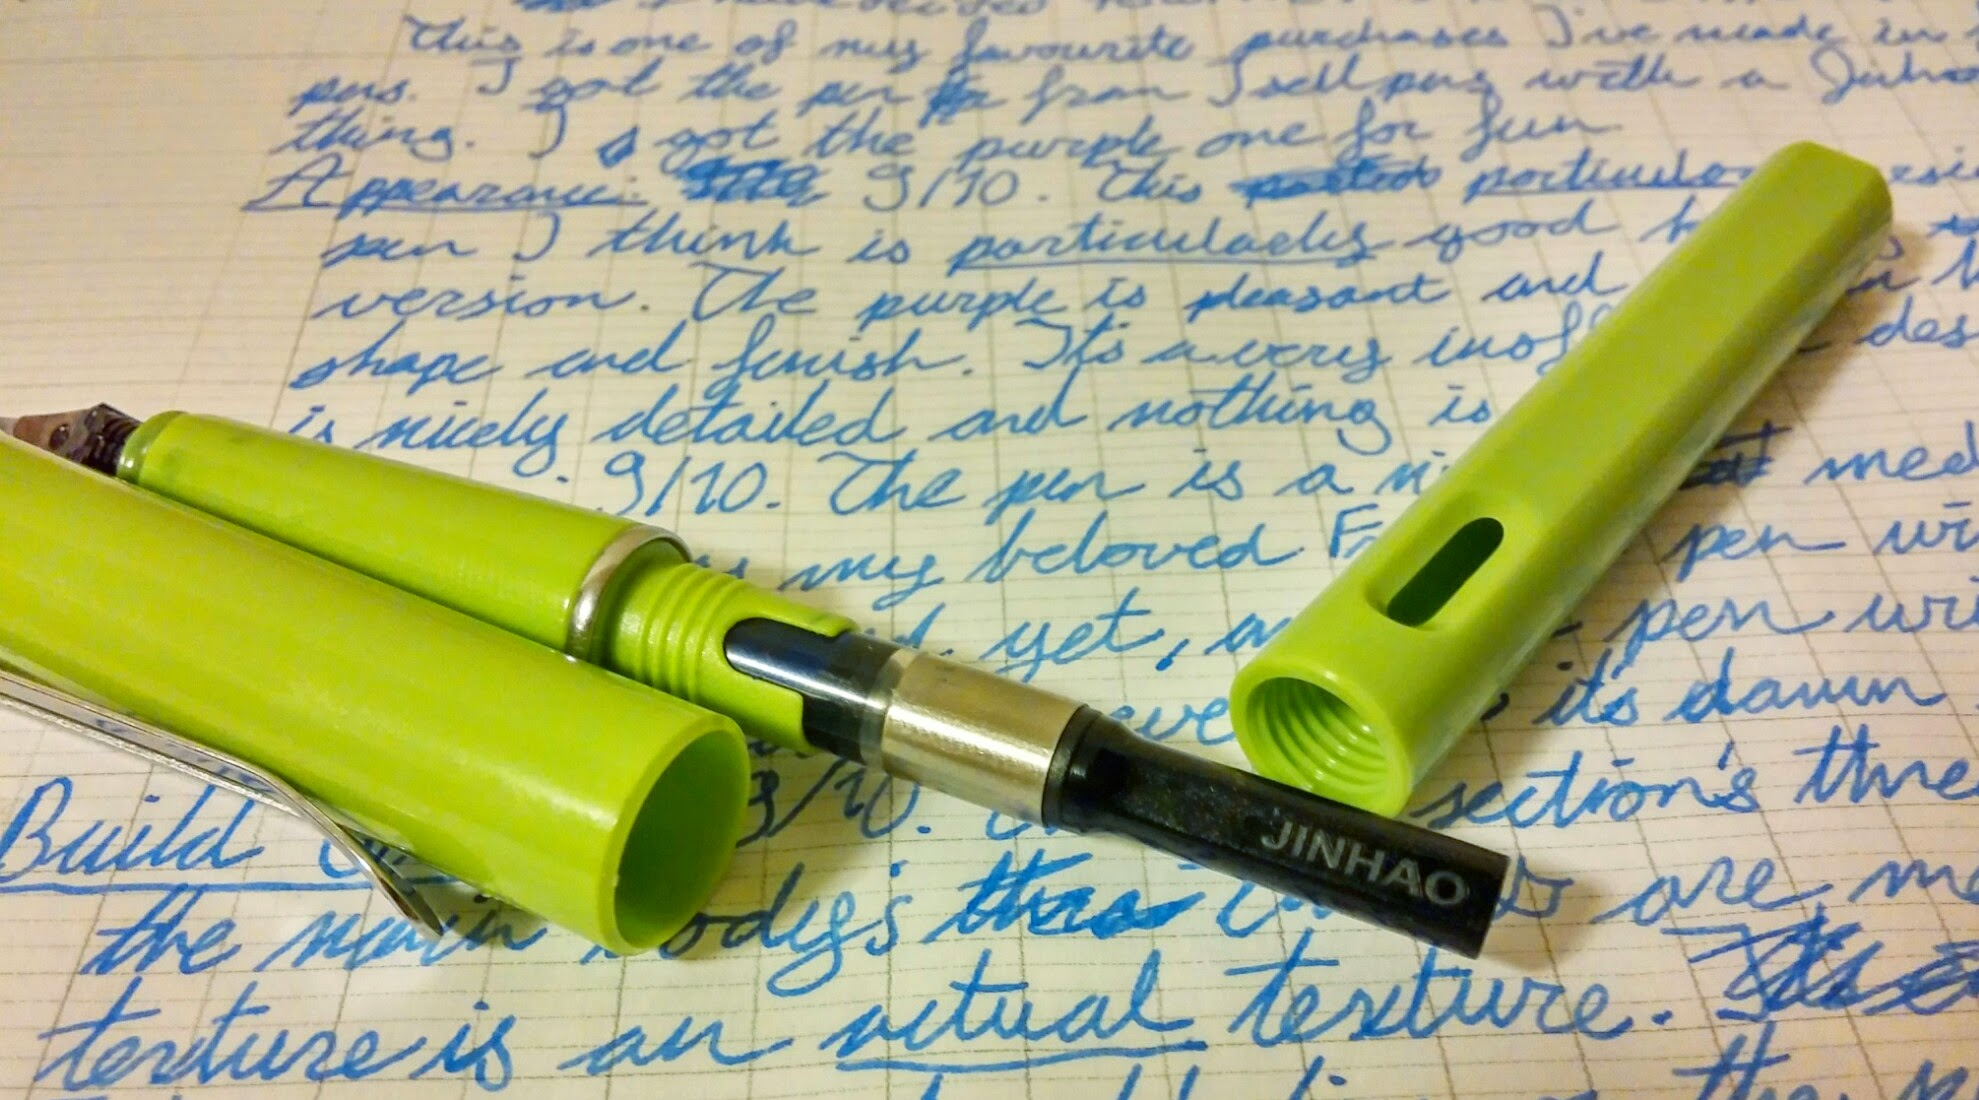 The Plastic Jinhao 599 From Someone Who Hates Safaris